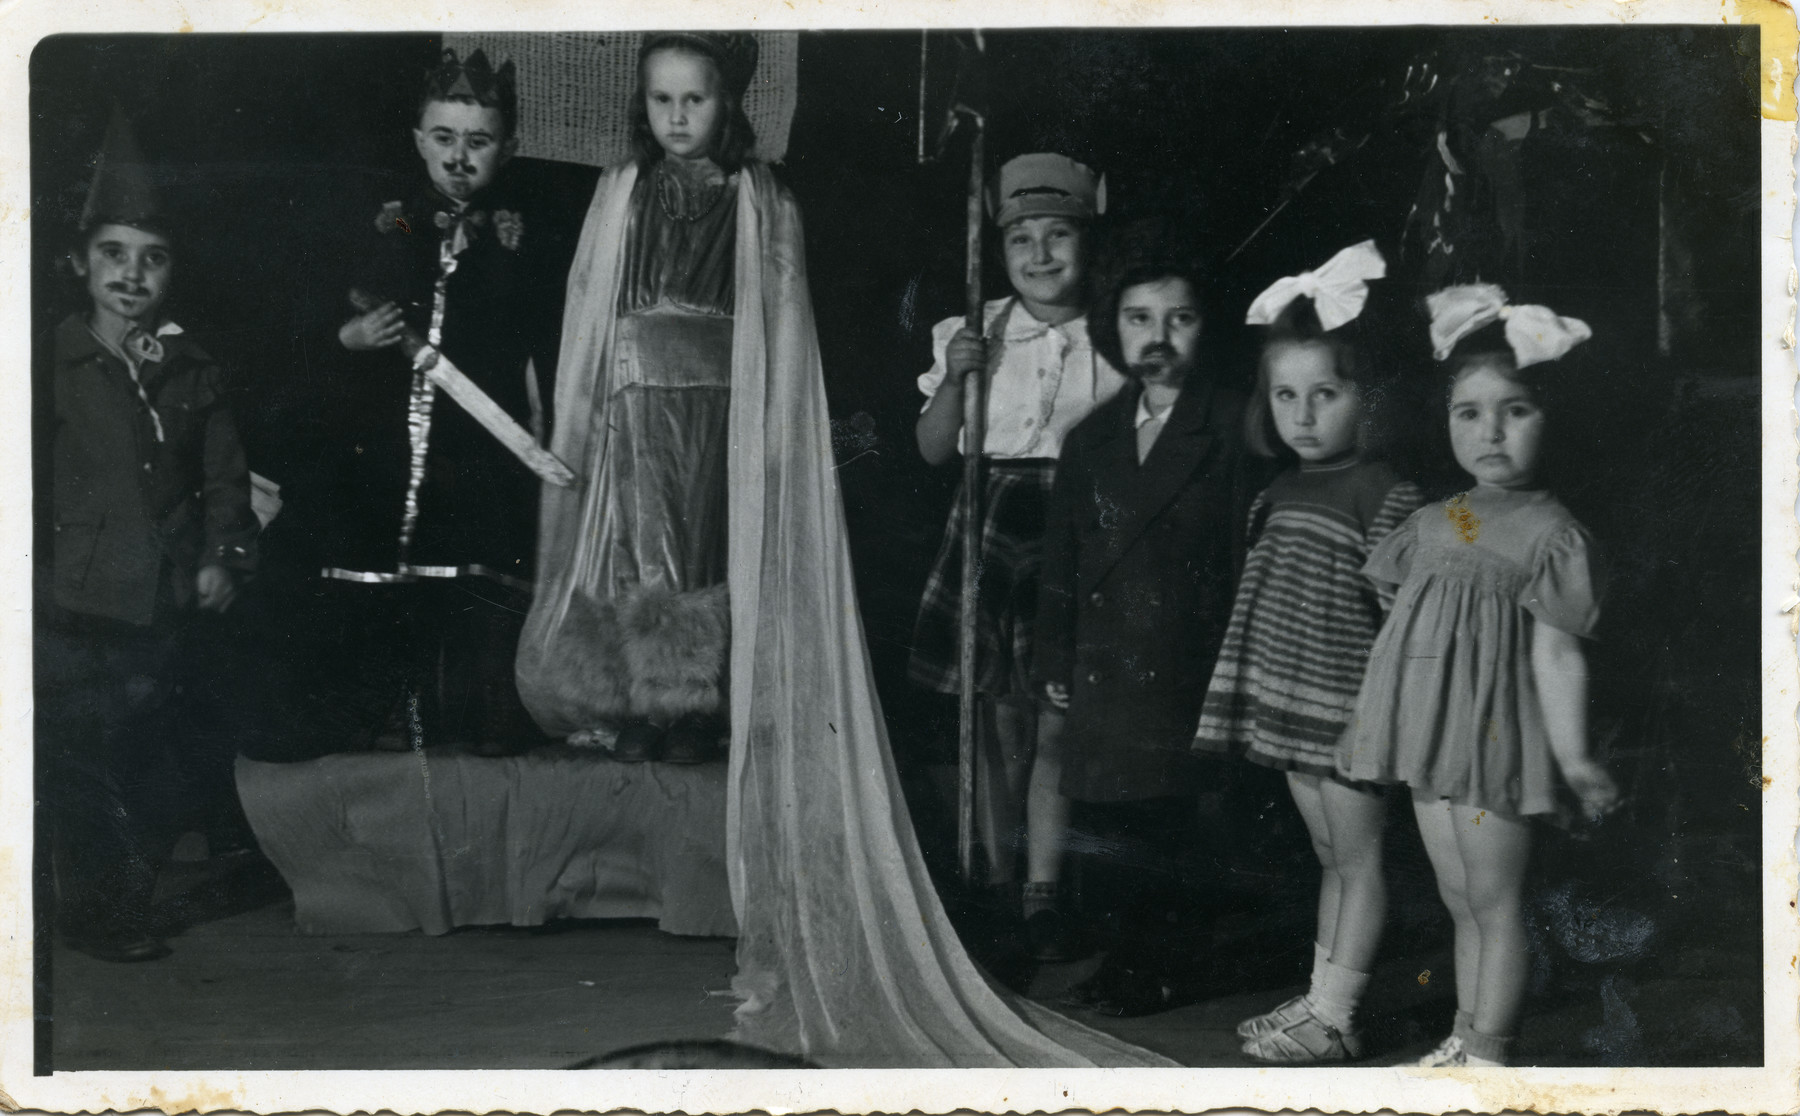 Jewish children participating in a Purm party.  Shulamit Kagan Gilor, second from right, performing with other children in the Displaced Persons Camp in Cremona.